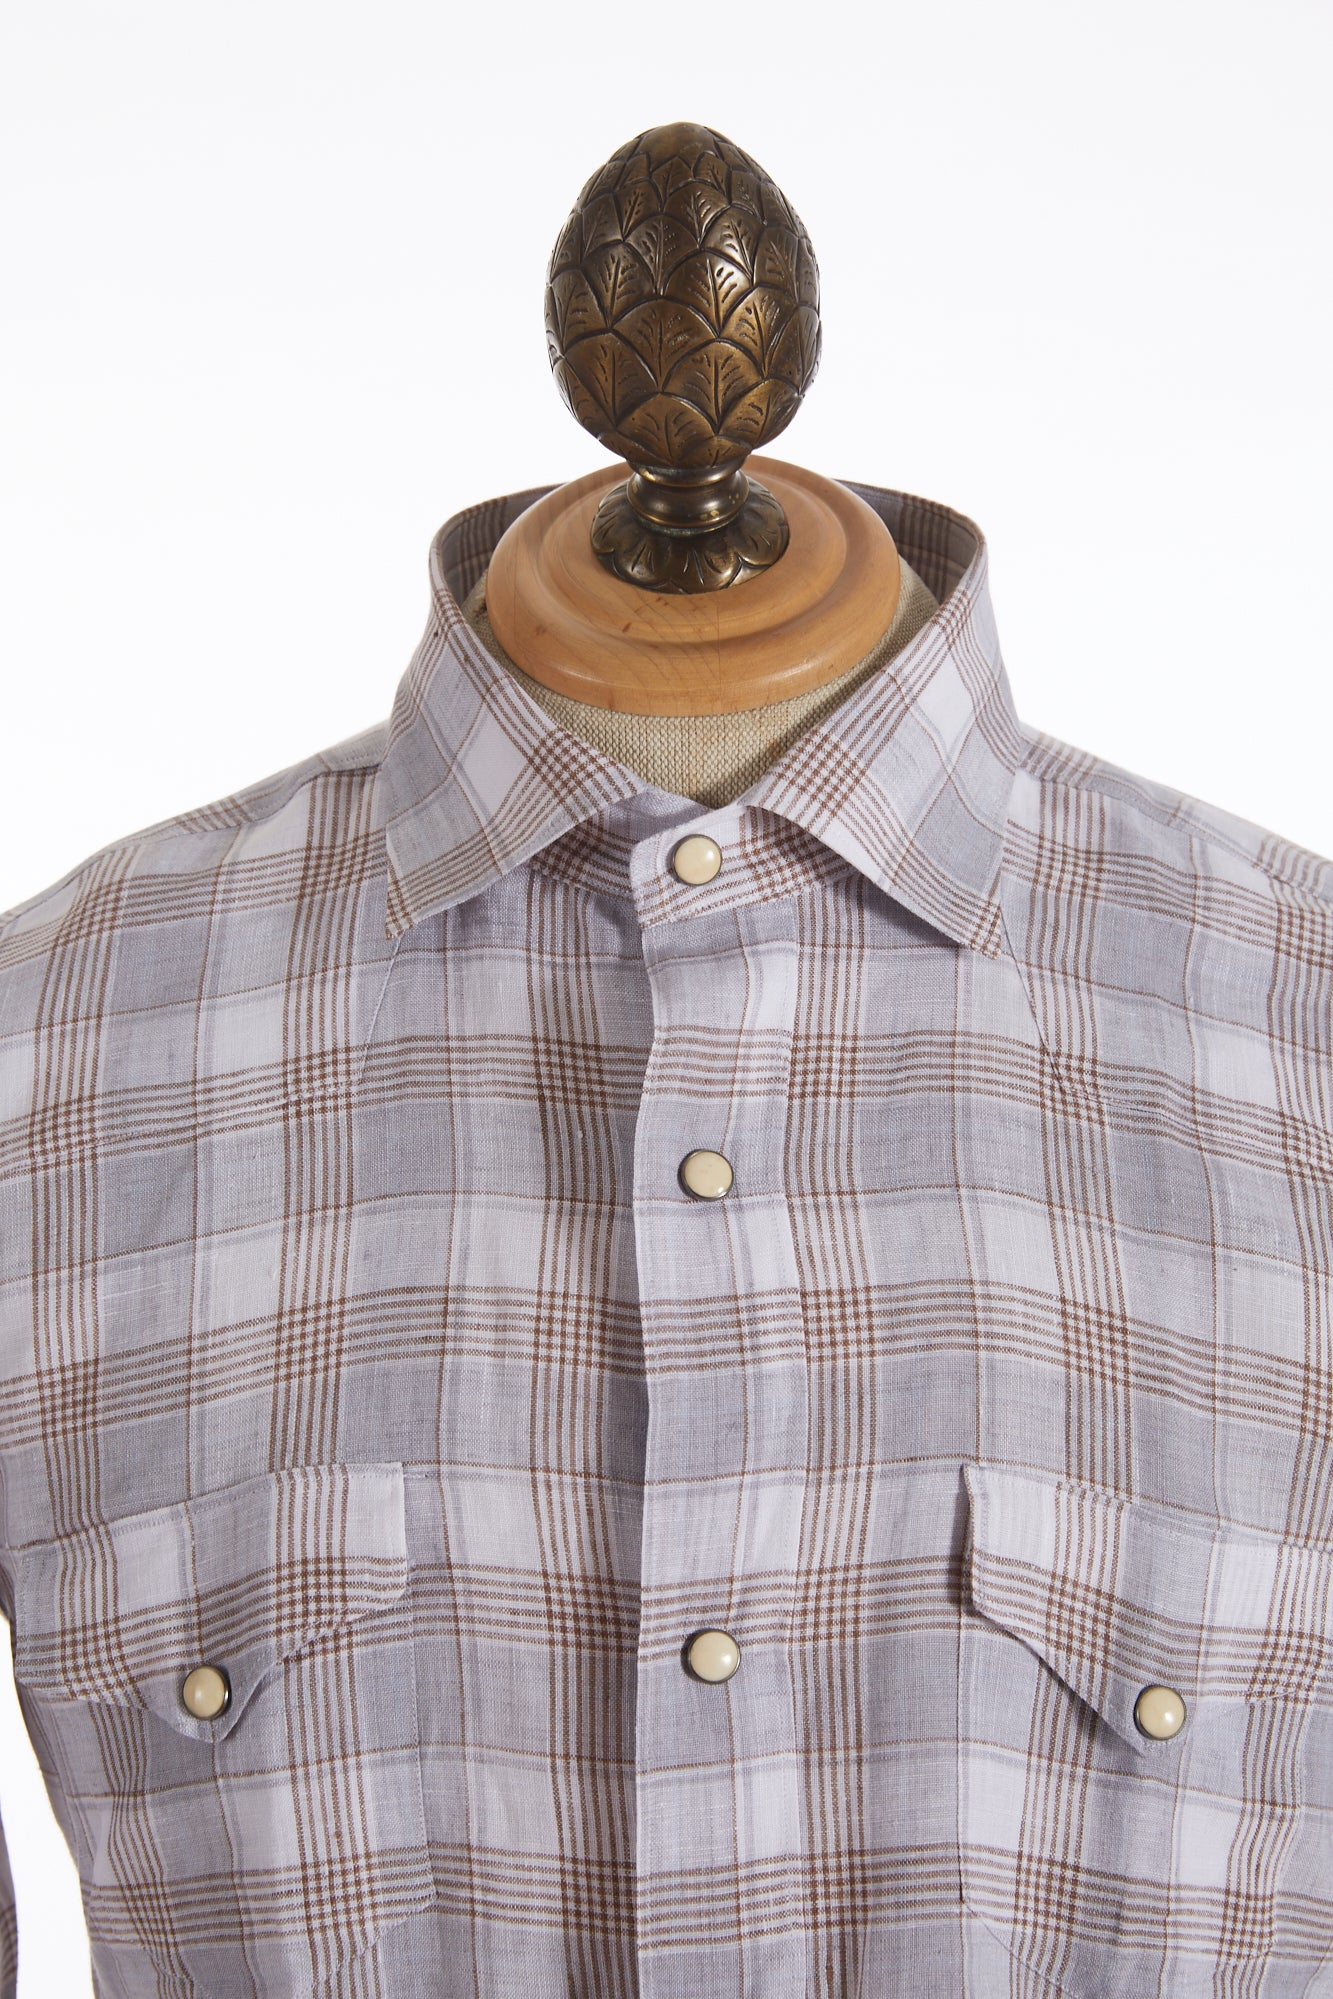 Eleventy Linen Brown Check Snap Button Shirt - Shirts - Eleventy - LALONDE's